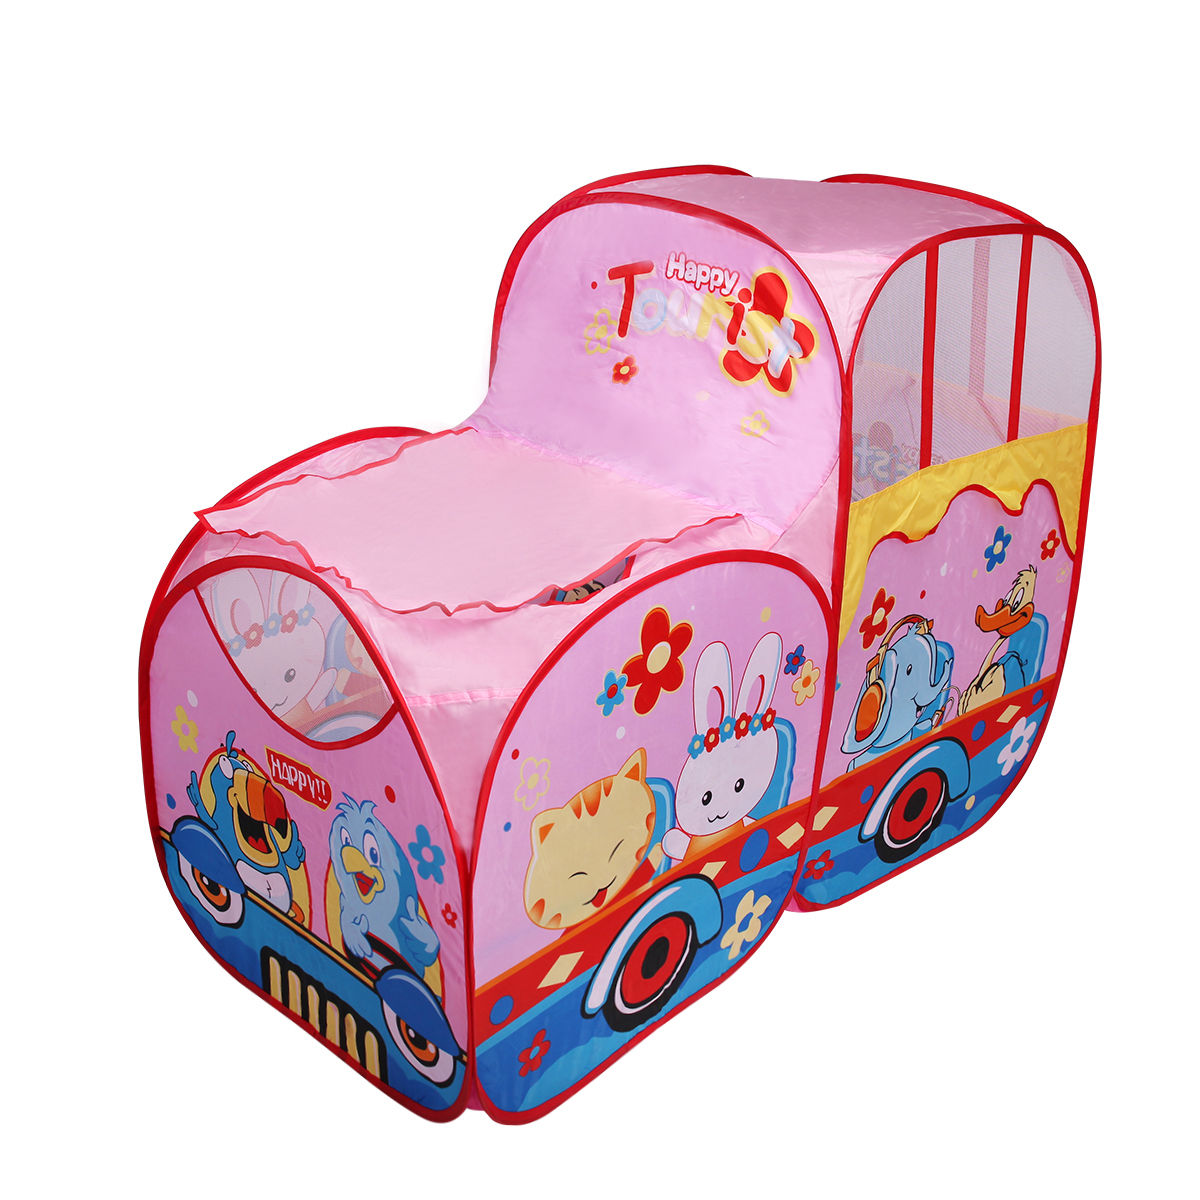 Goplus Kids Baby Play Tent Train Colorful In/Outdoor Portable Foldable Children Gift